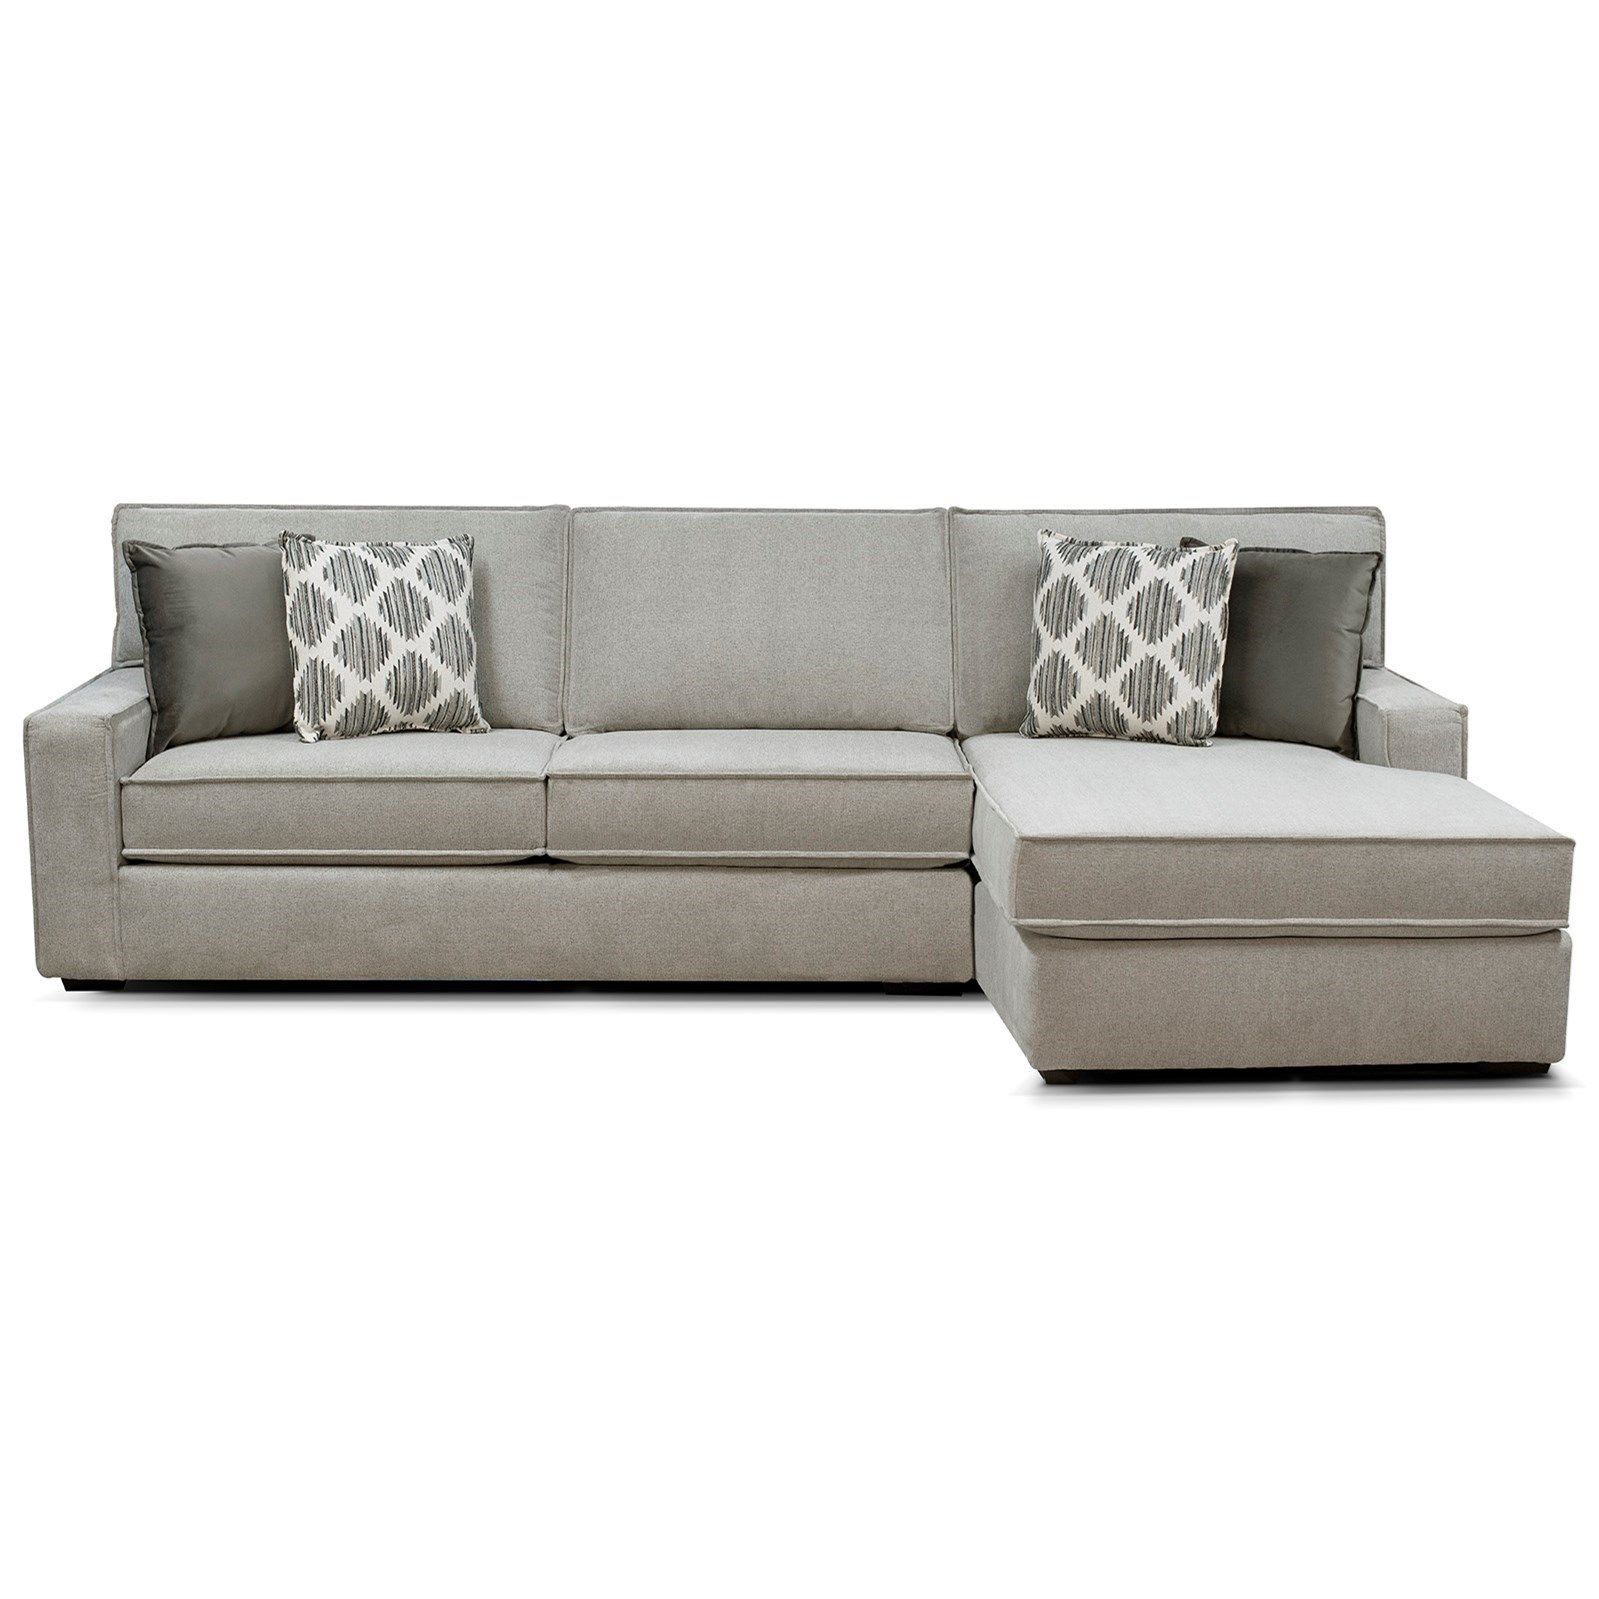 Evans Sectional With Chaise By England At Crowley Furniture